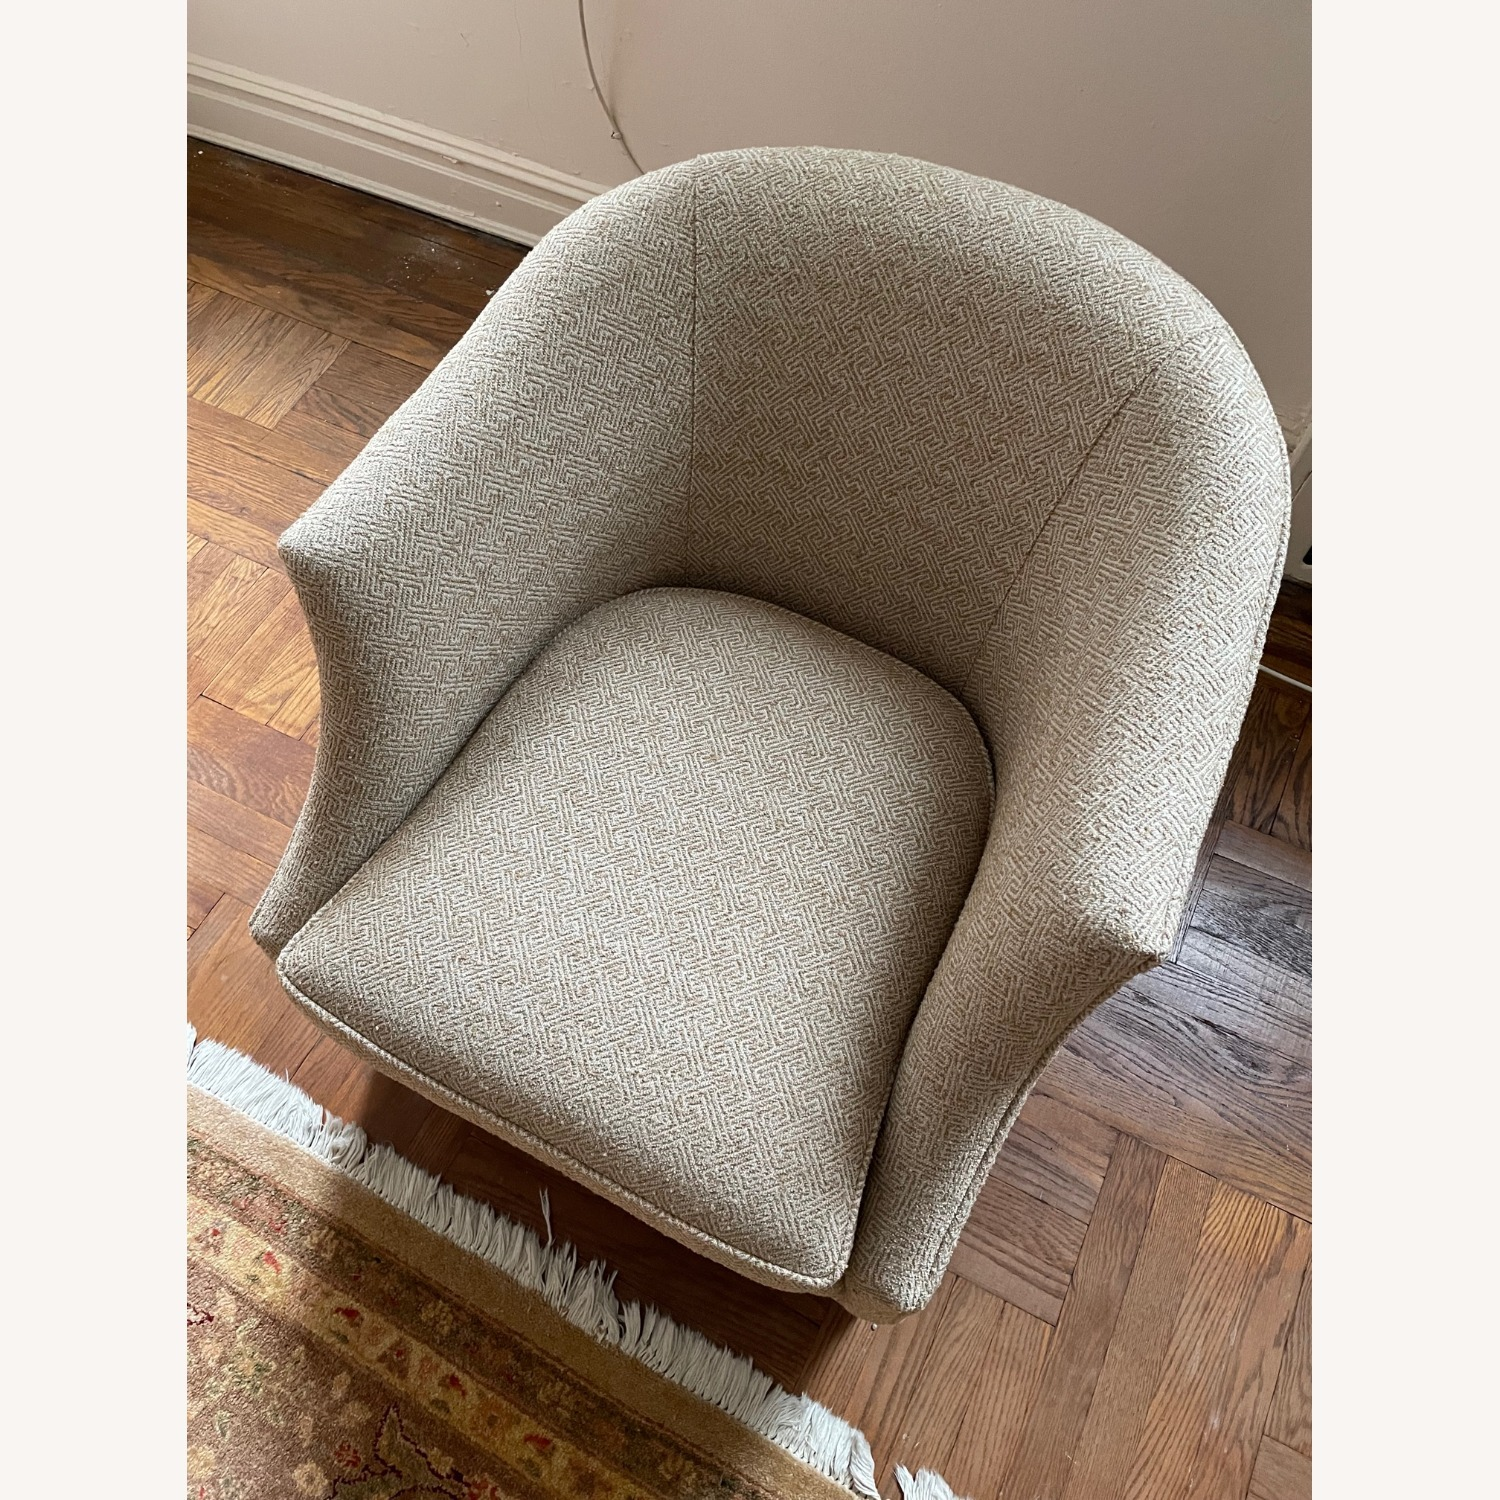 Brown Geometric Patterned Chair - image-3